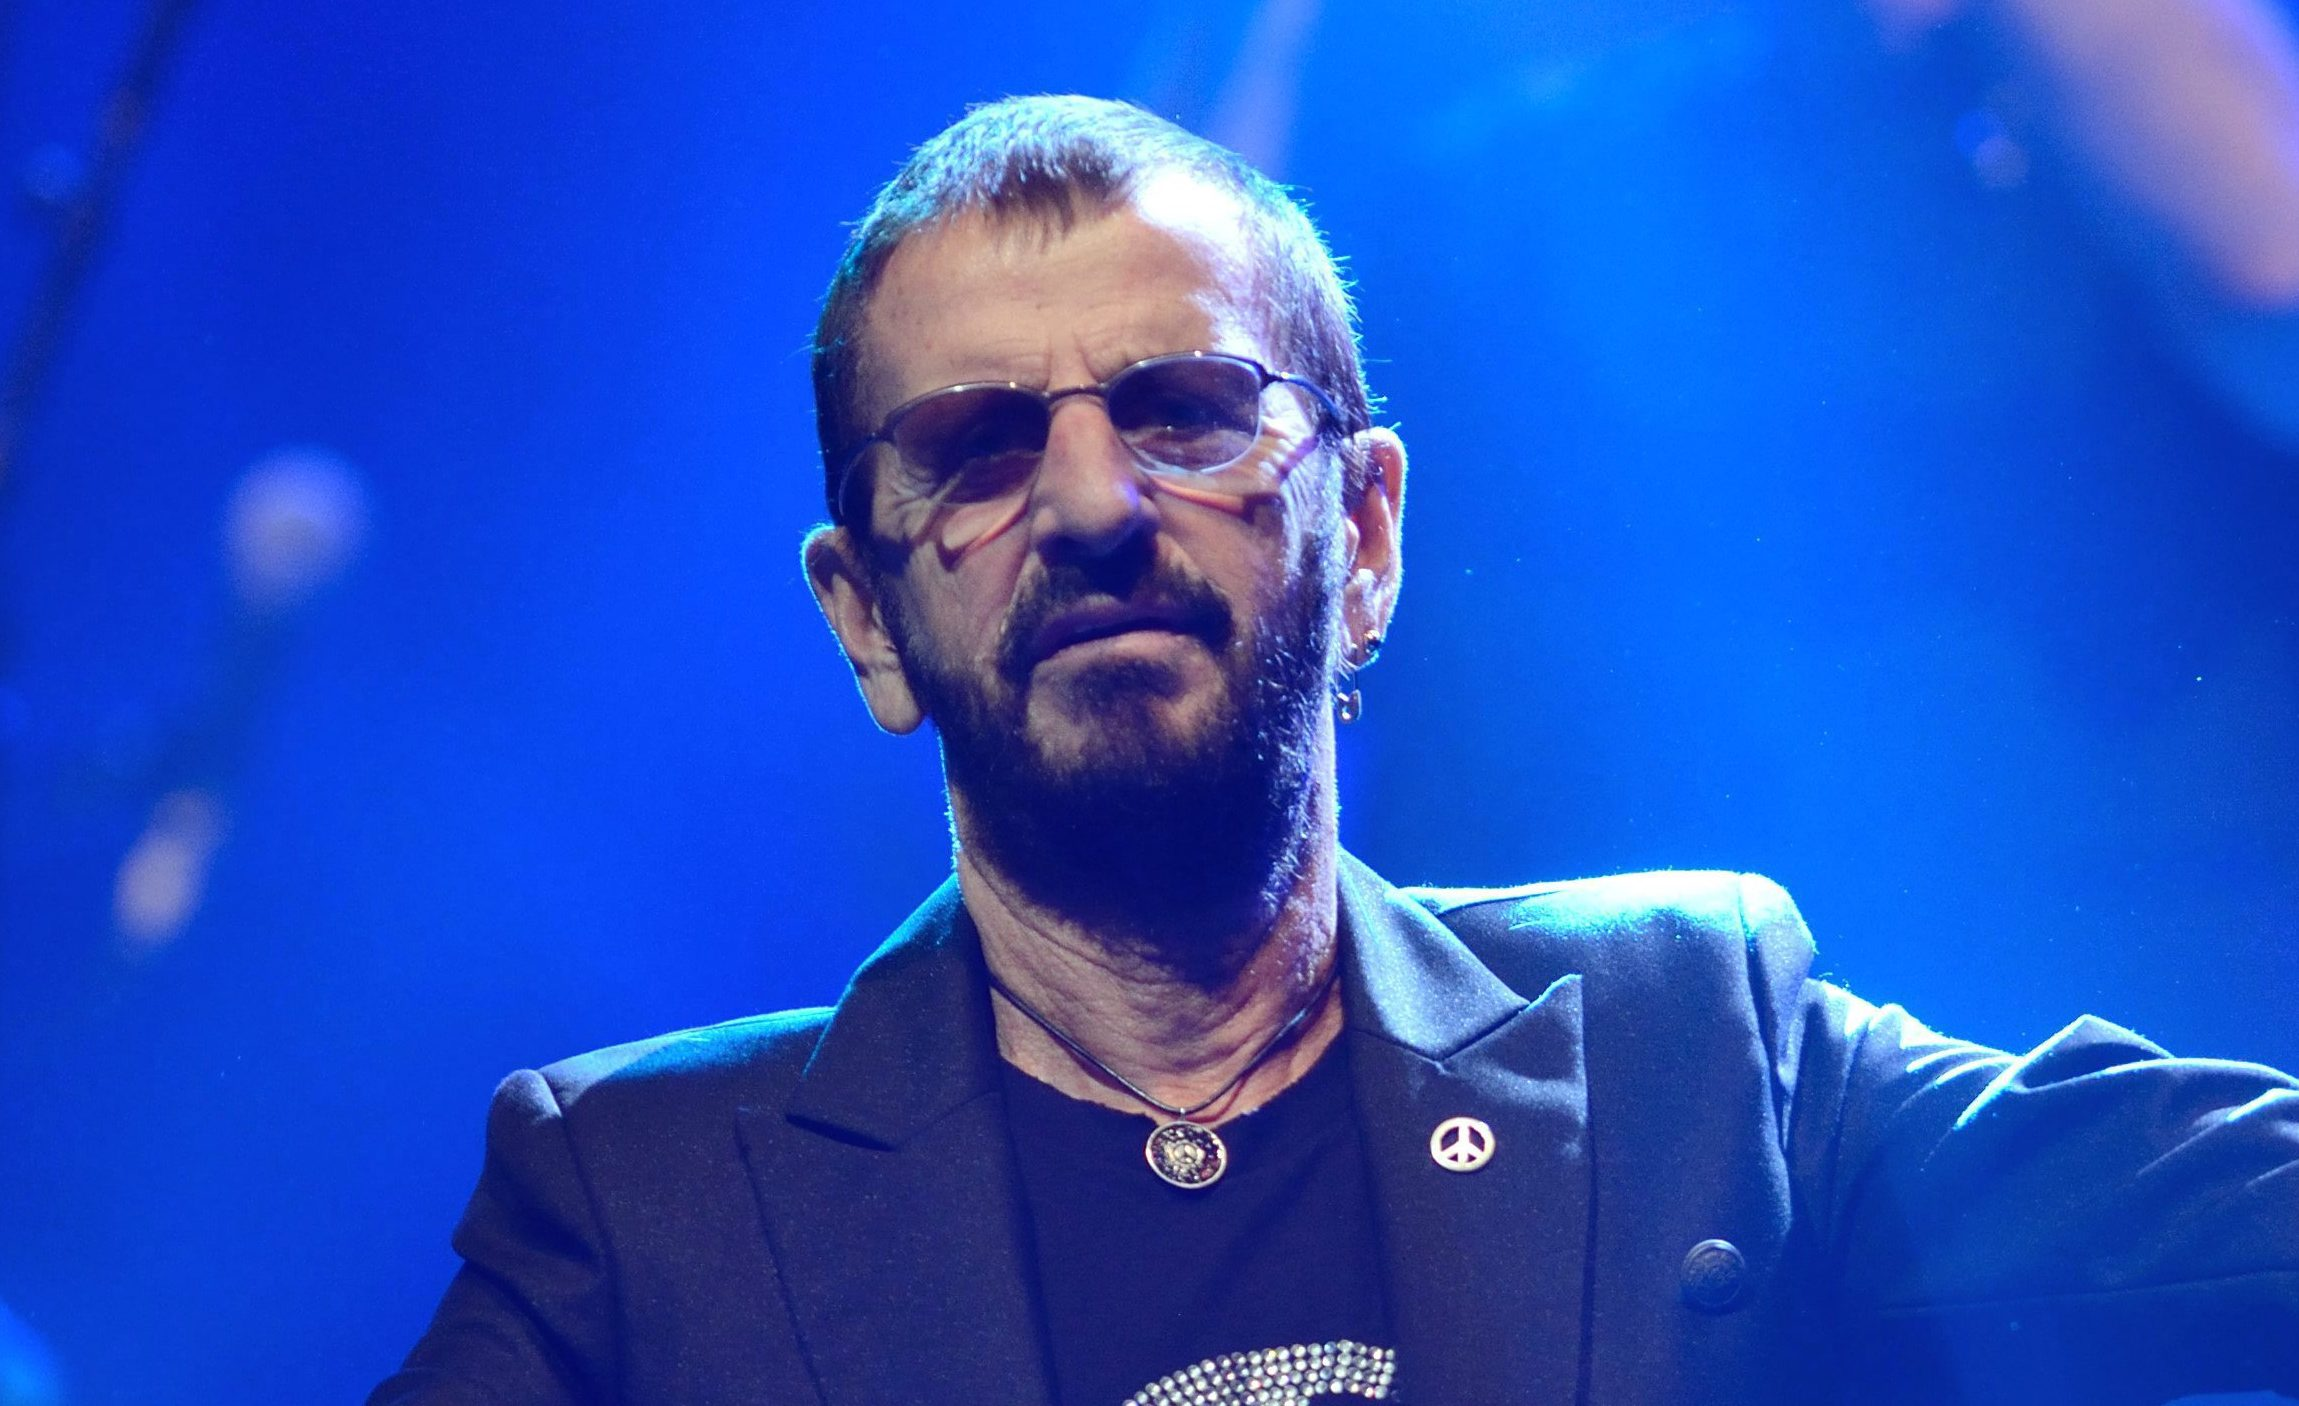 Ringo Starr To Celebrate 80th Birthday With Star Studded Youtube Concert Etcanada Com